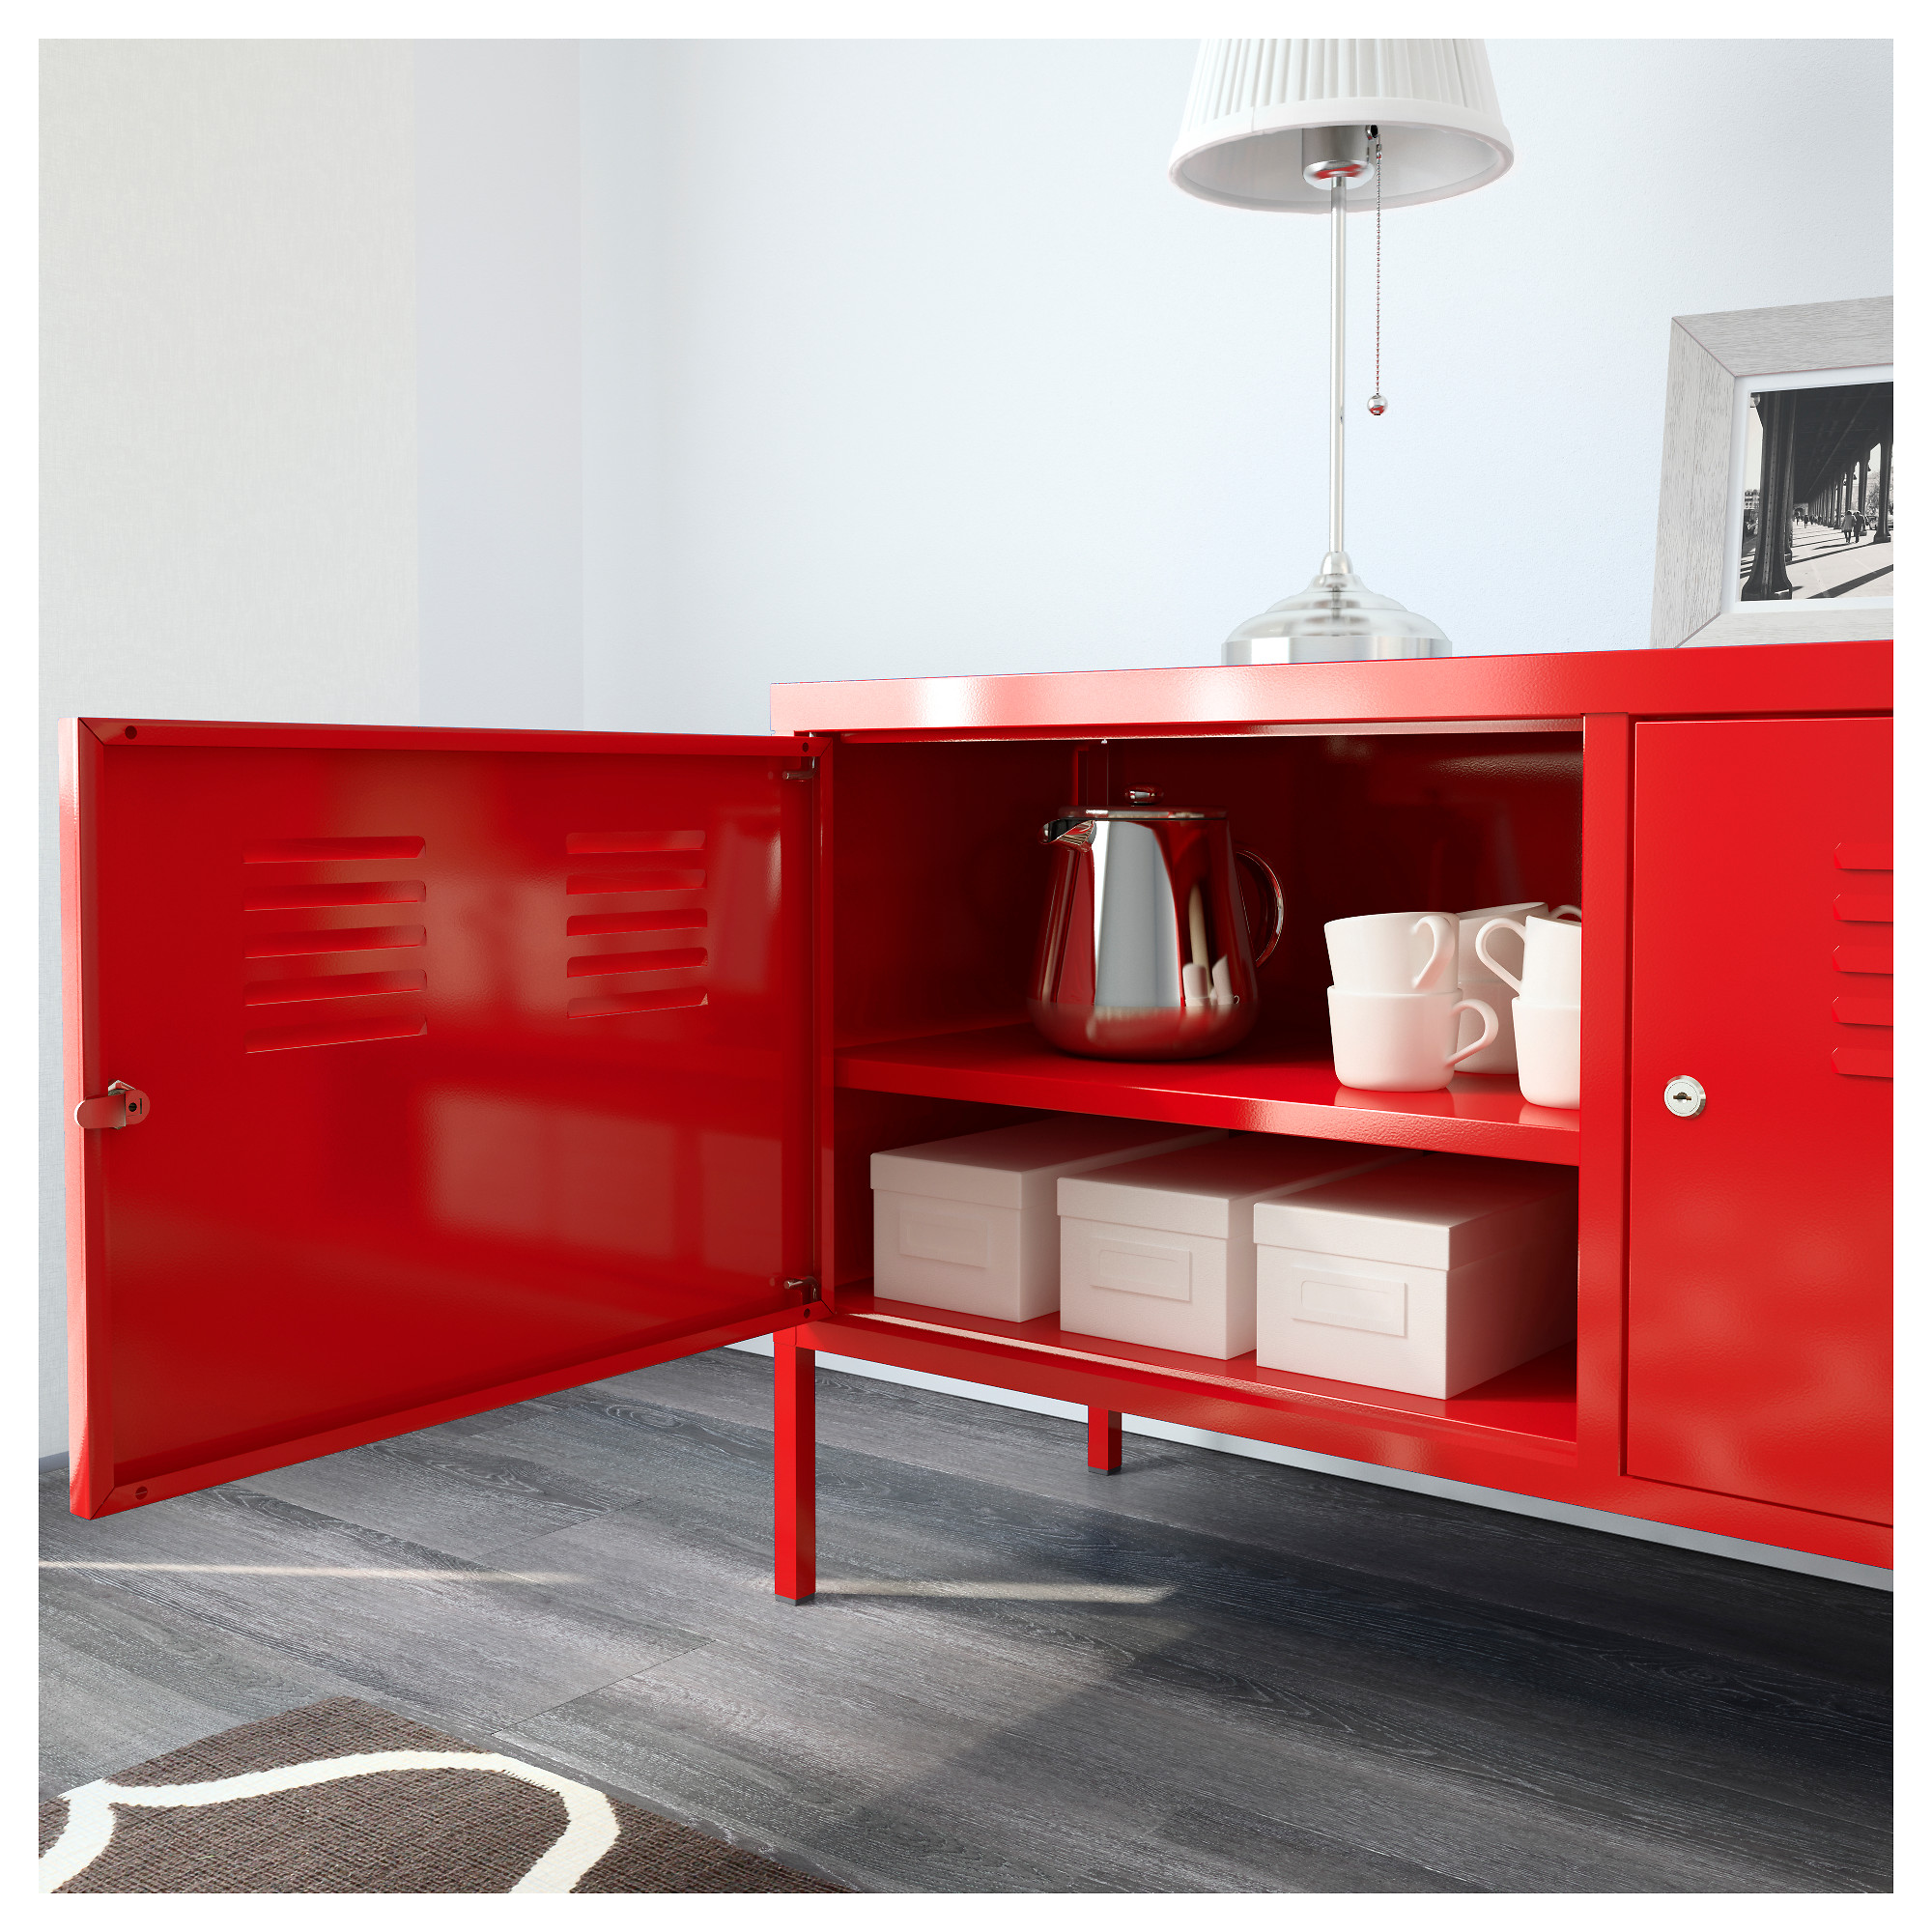 new styles 52117 341d9 IKEA PS - cabinet, red | IKEA Hong Kong